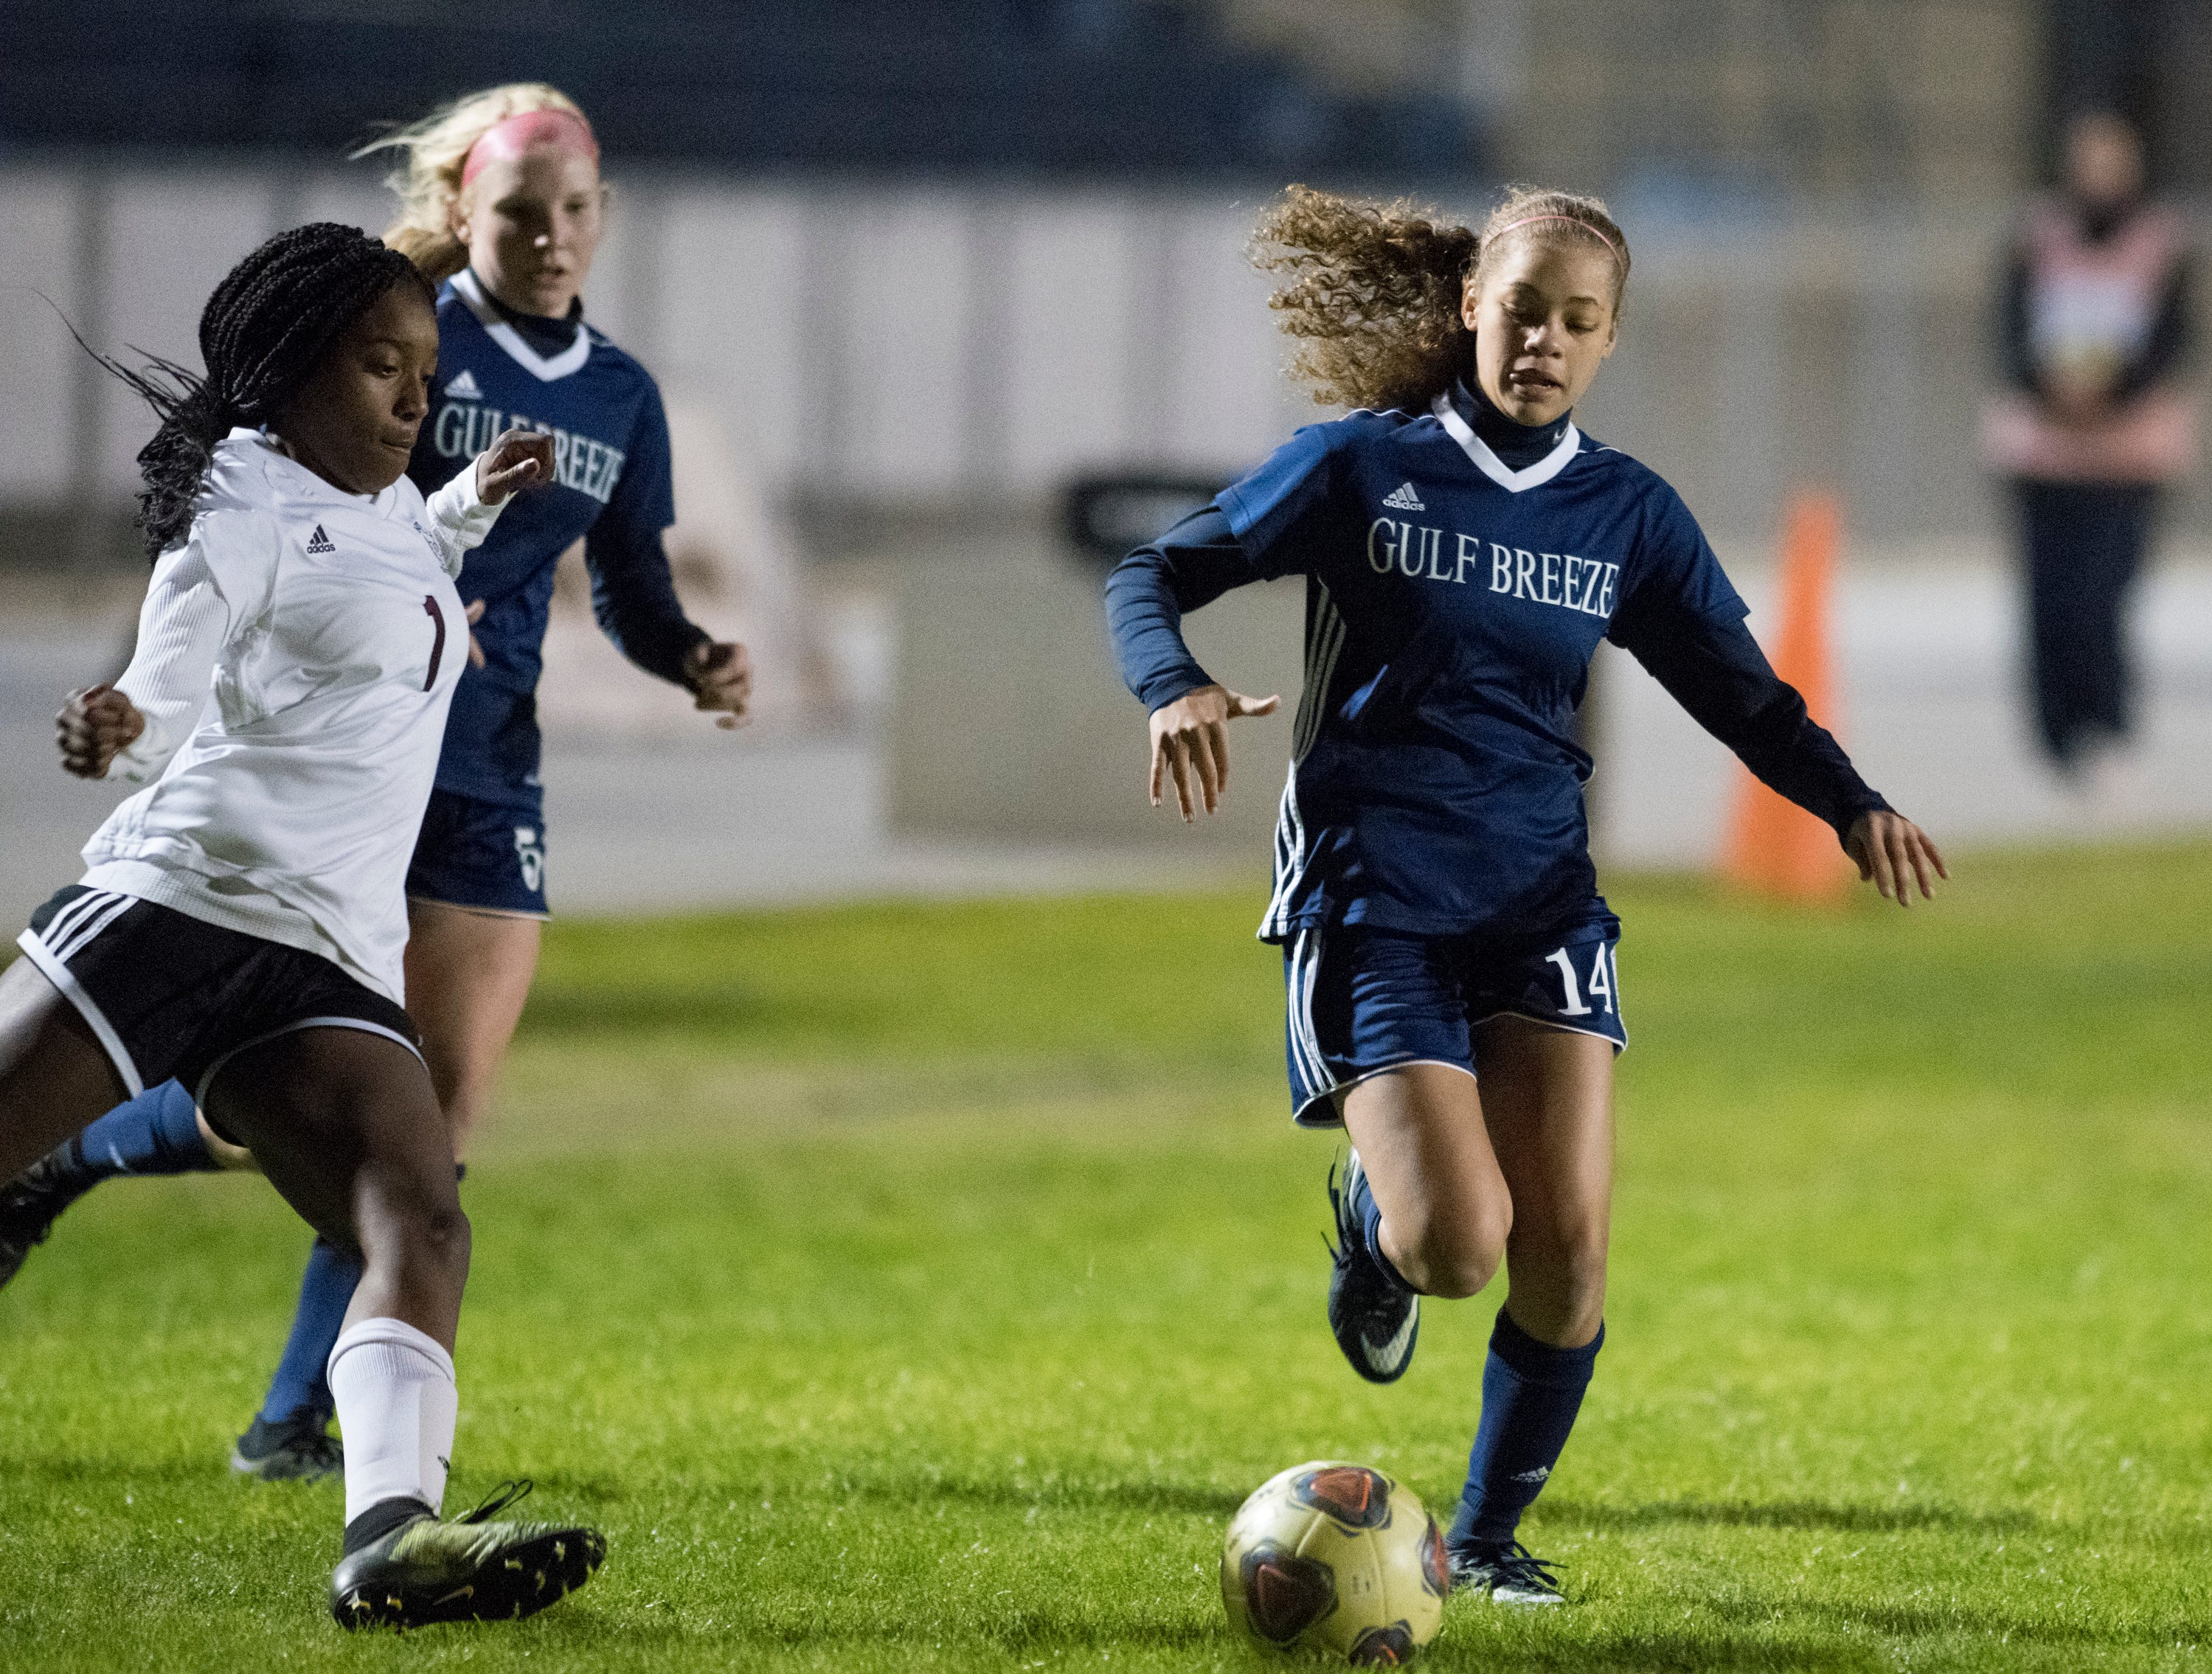 Aiyannah Robinson (14) dribbles the ball during the Niceville vs Gulf Breeze soccer game at Gulf Breeze High School on Thursday, January 10, 2019.